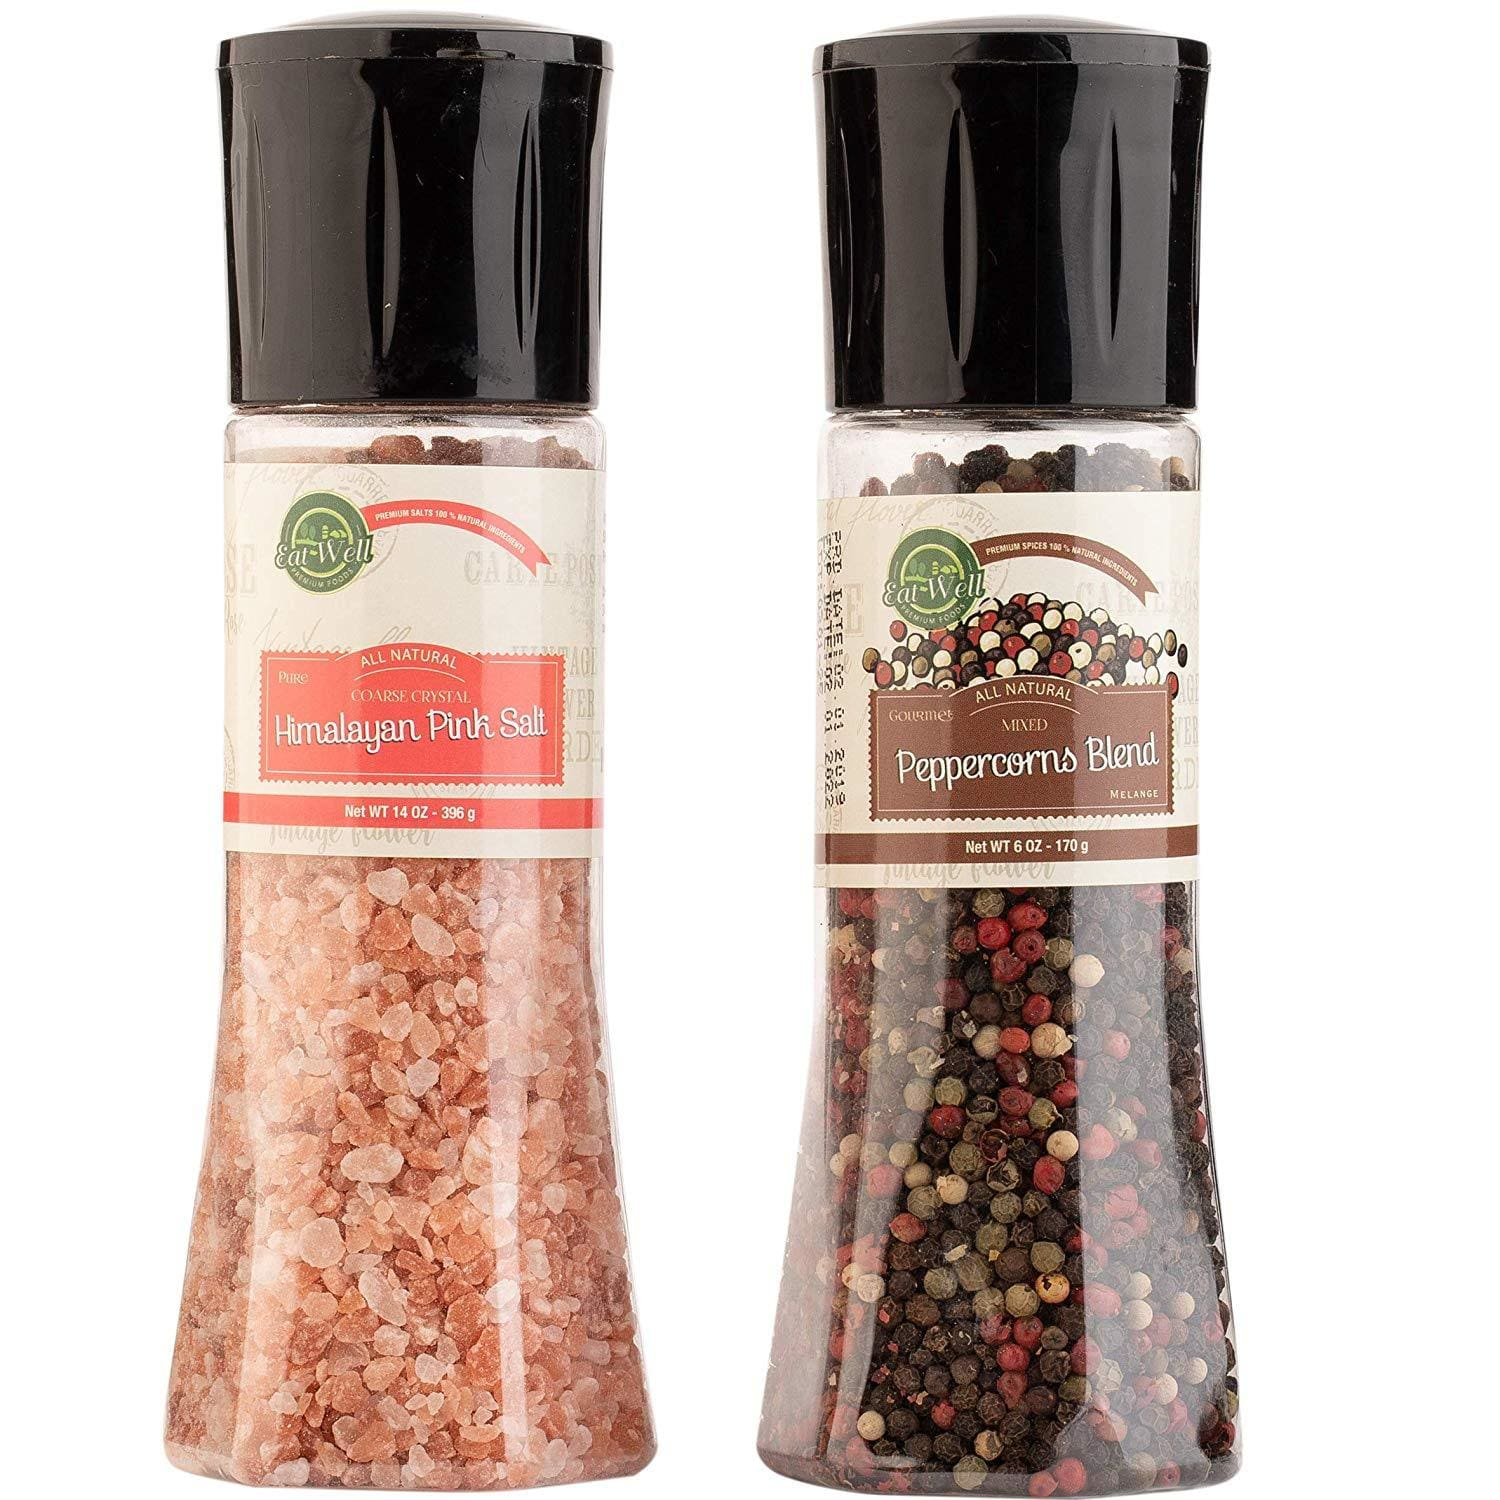 Four Peppercorns Blend Grinder (6oz / 170 g) - Pink Himalayan Salt Grinder (14 oz / 396 g)